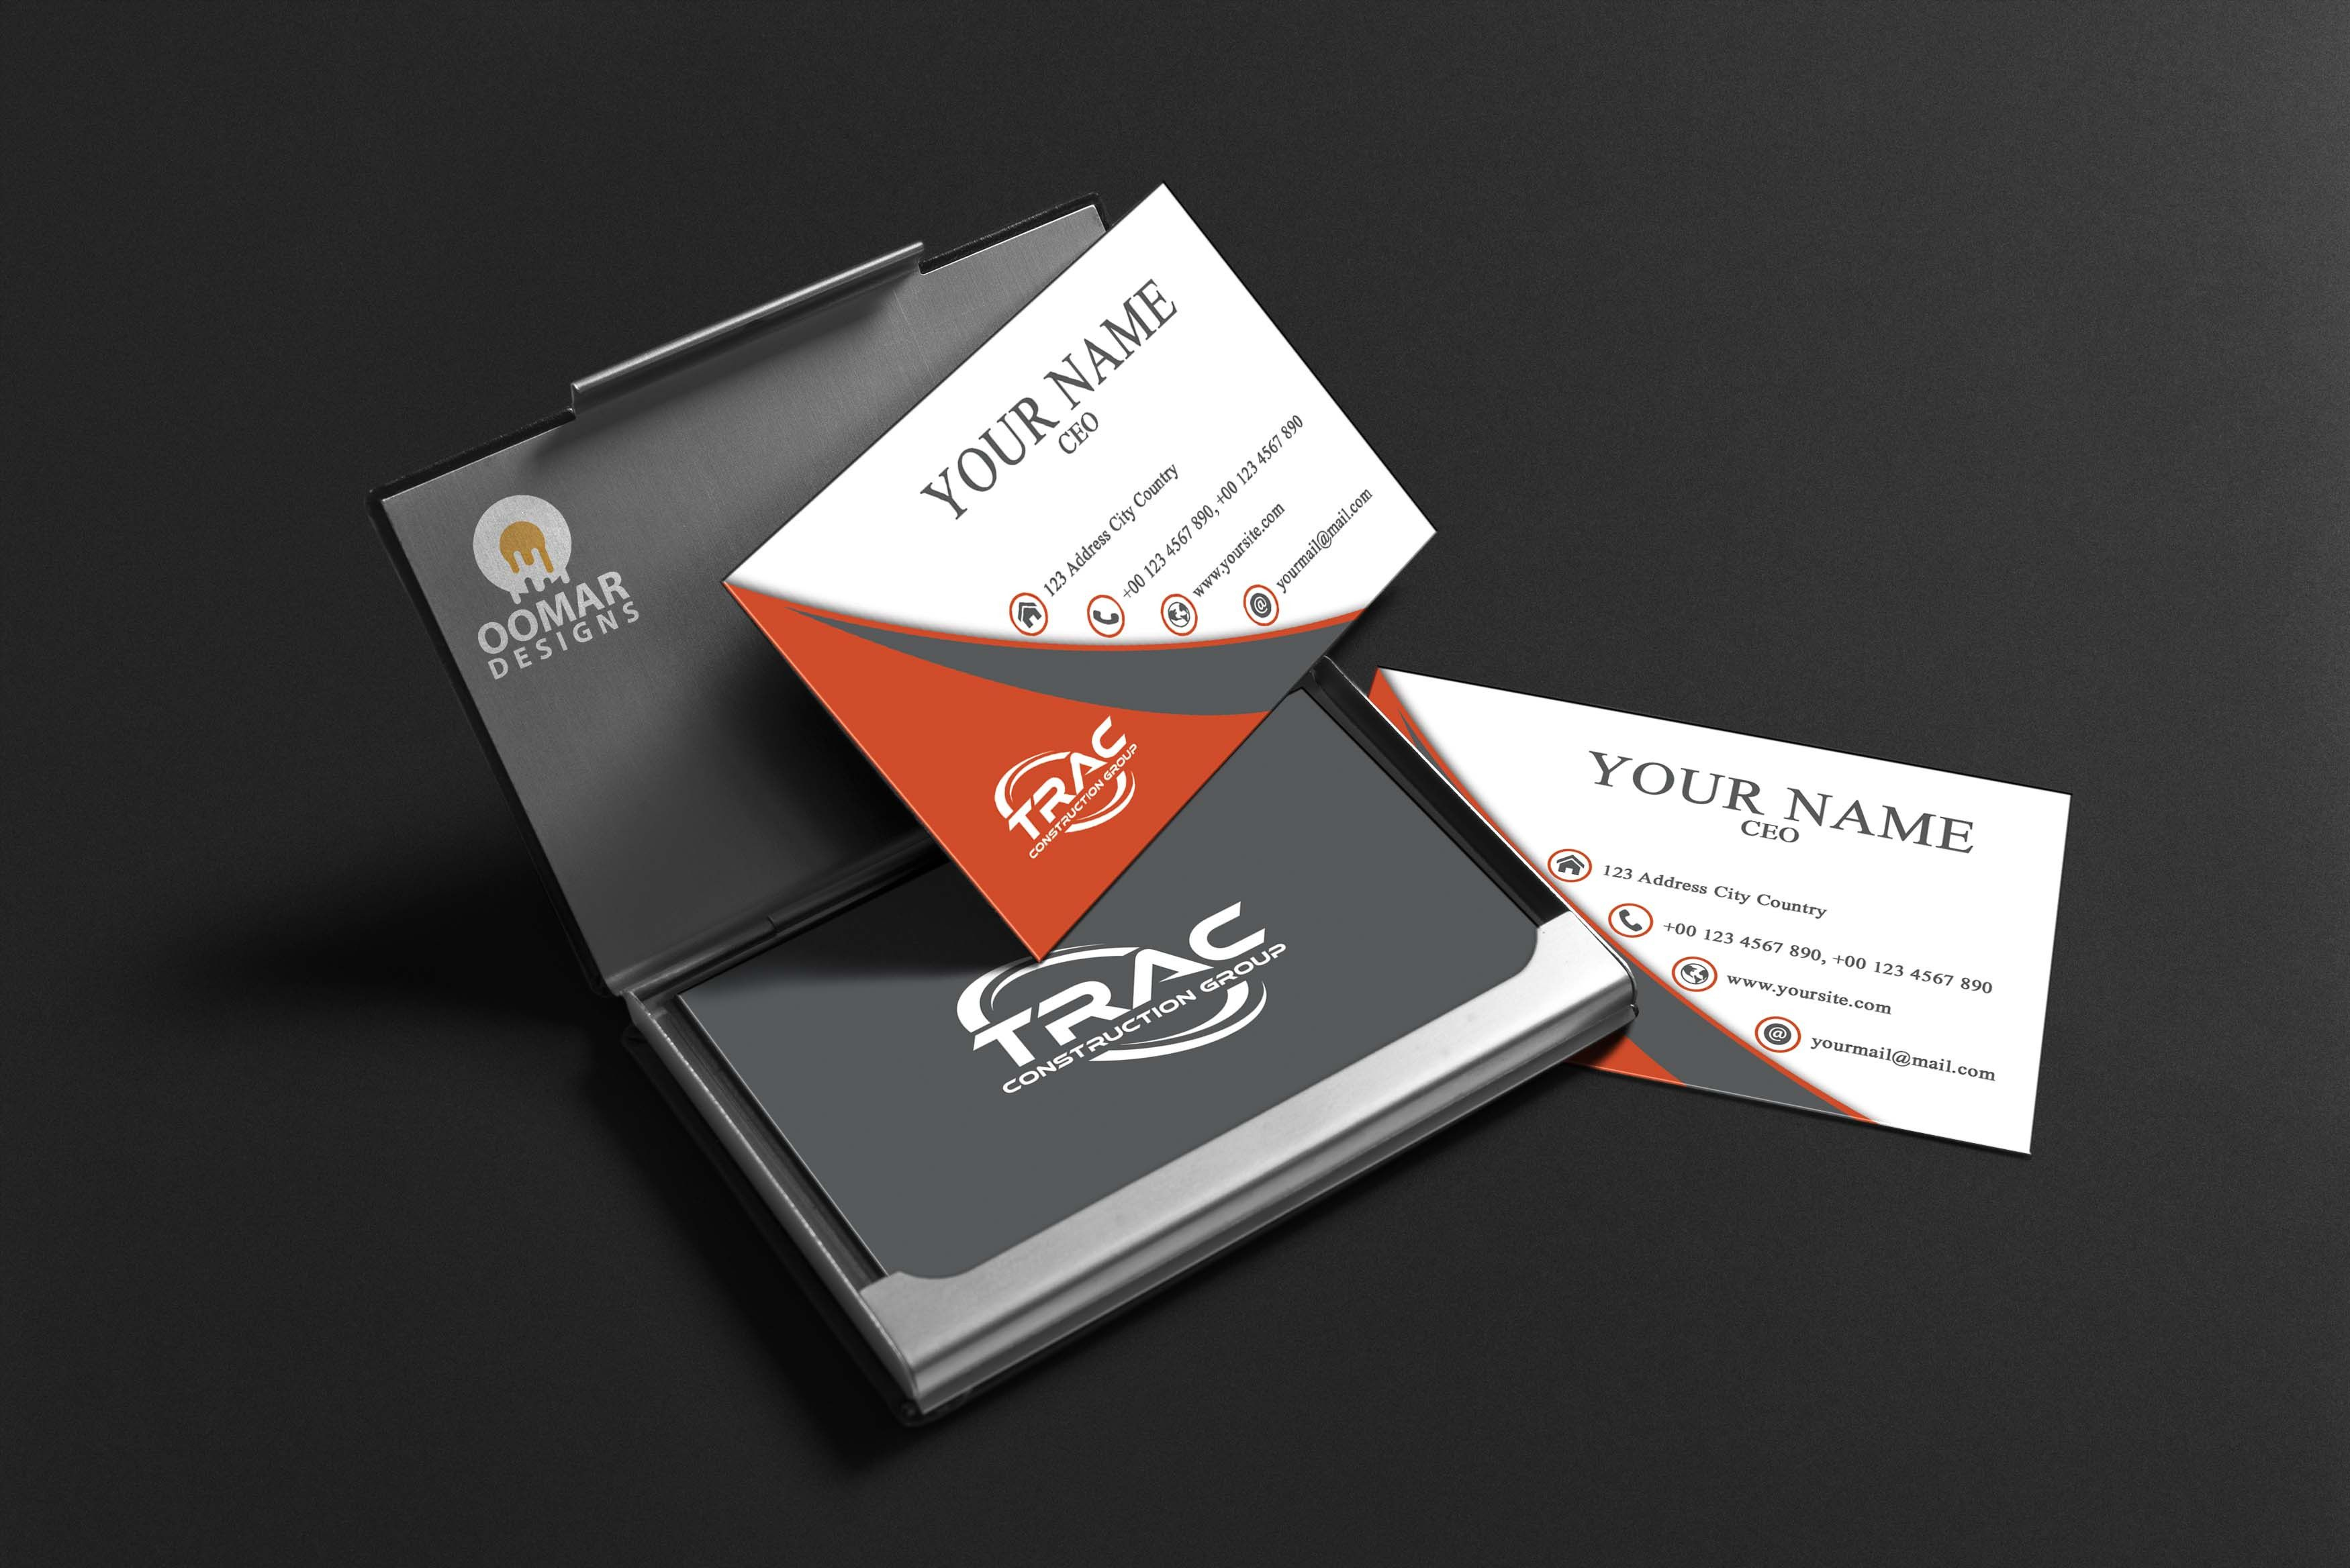 2 Sided Business Card Template Word In 2020   Double Sided In 2 Sided Business Card Template Word